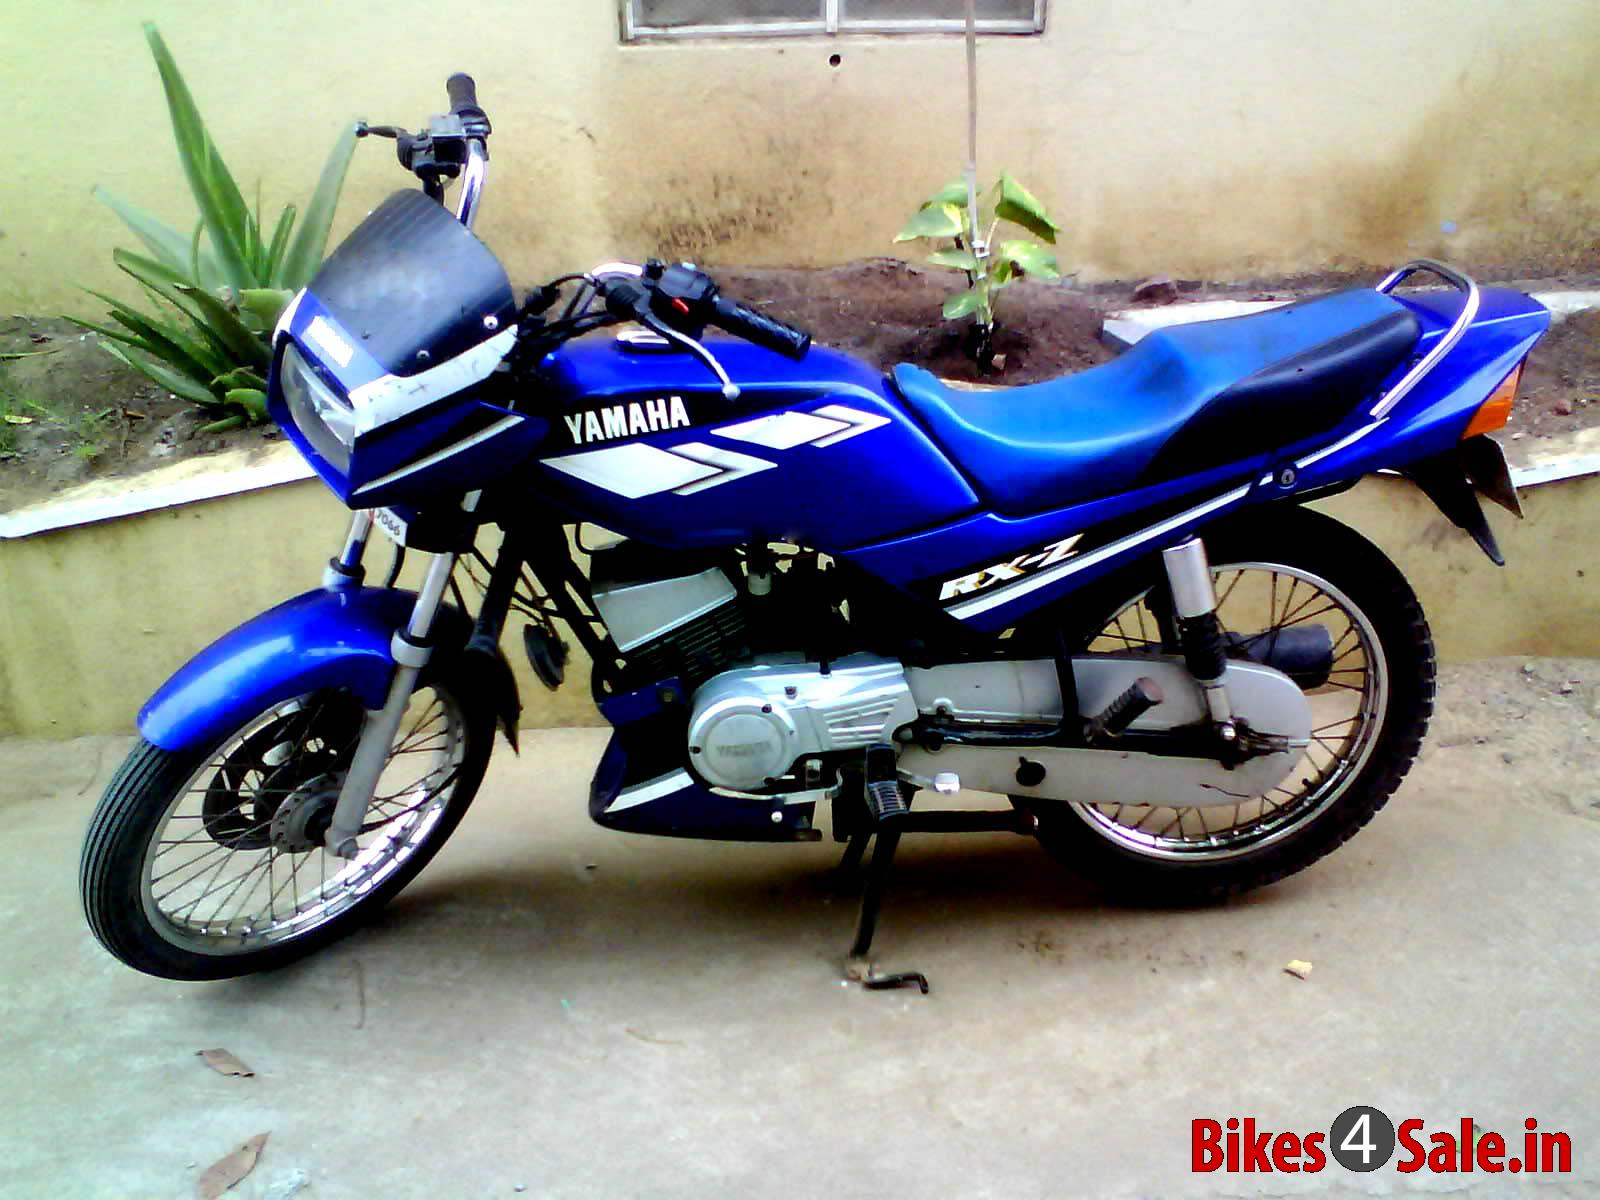 Yamaha rxz photo - 4